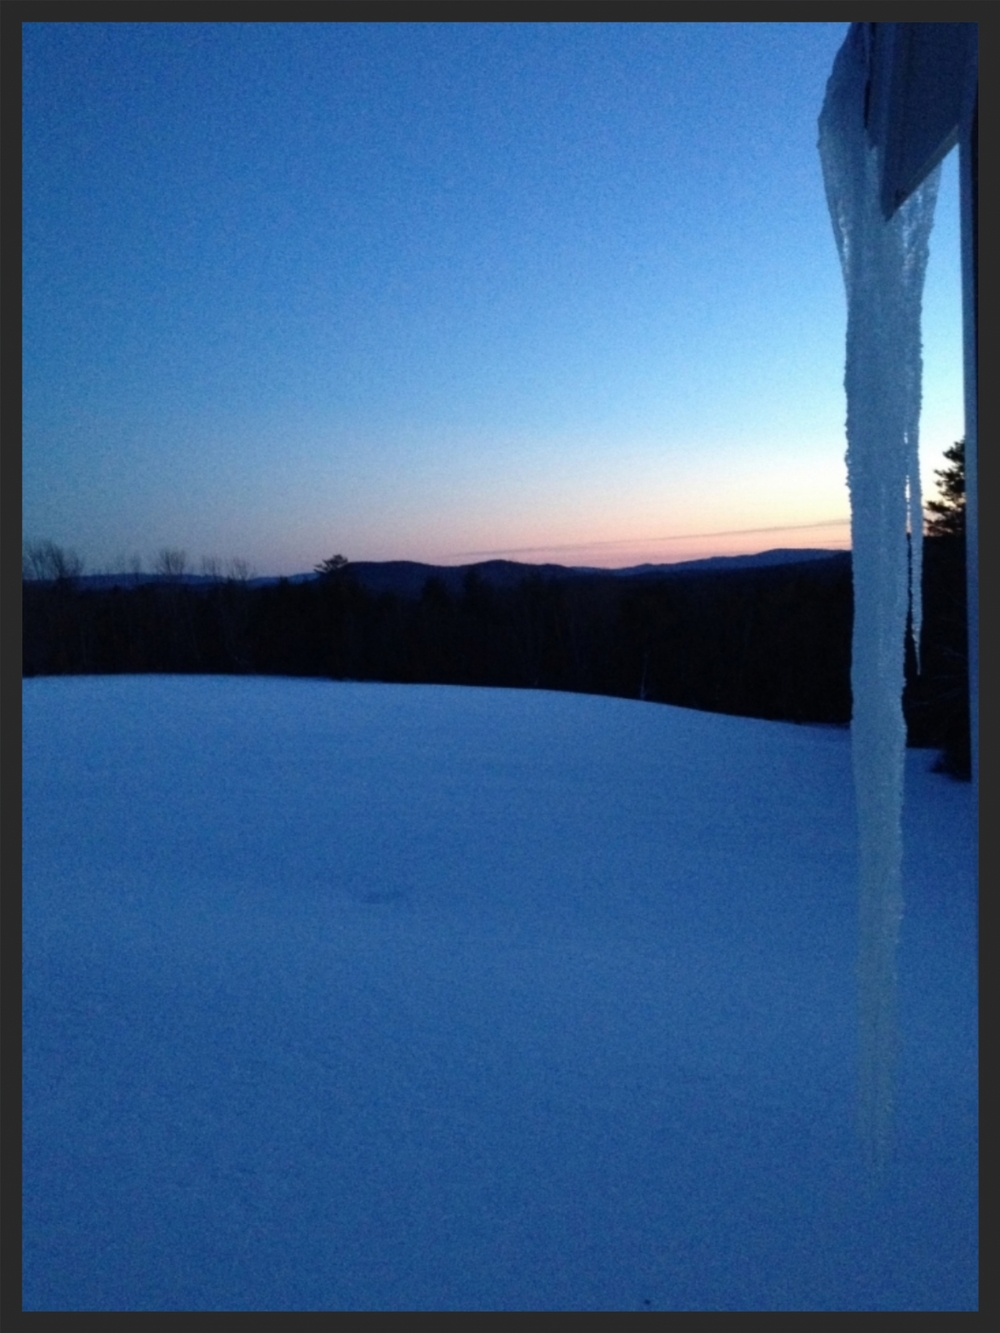 The beauty and perils of frozen water in front of a panoramic view looking toward Mt. Sunapee.